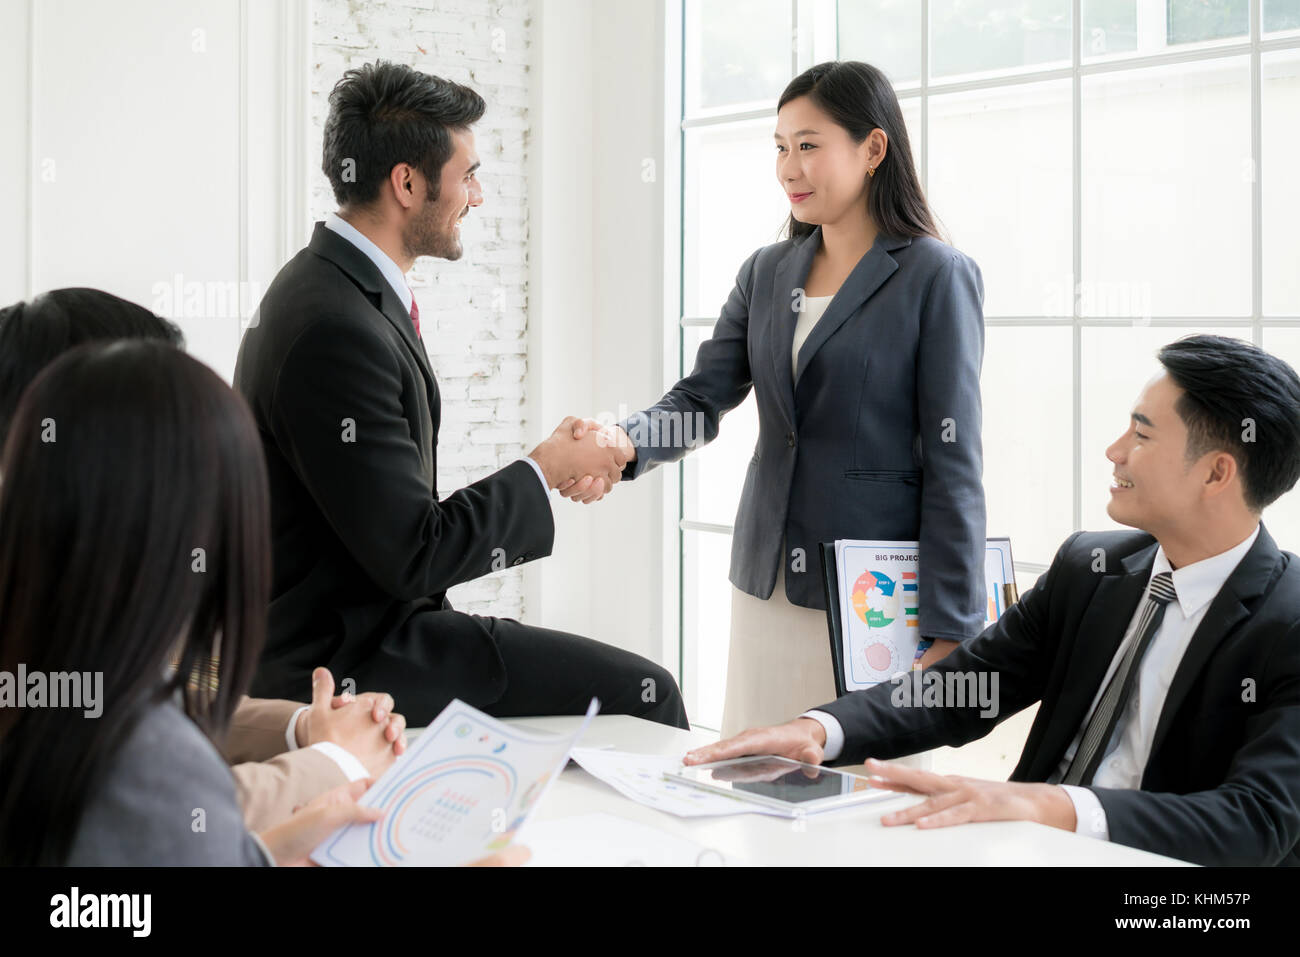 Entretien d'asian businessman and businesswoman shaking hands in lors de l'achèvement d'une réunion. Photo Stock